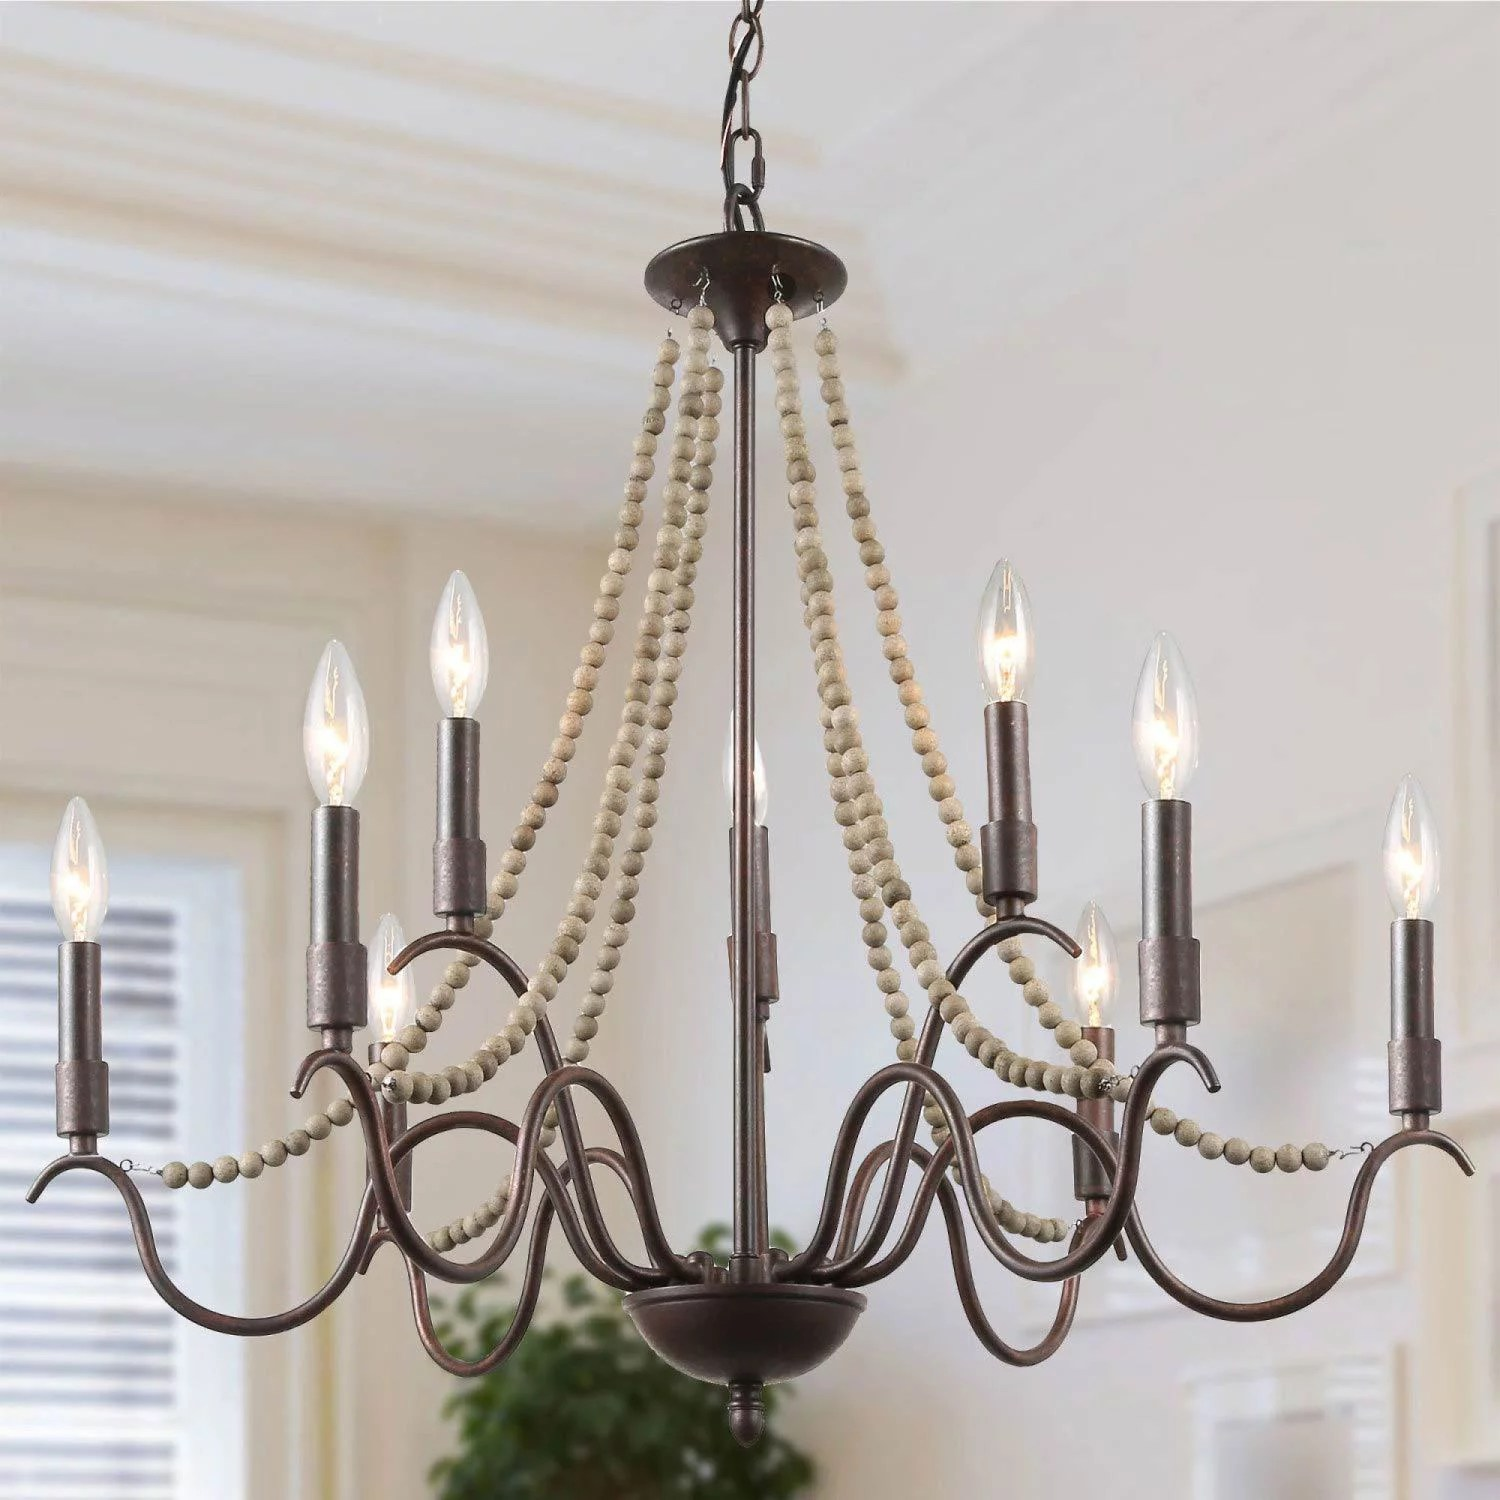 lnc french country chandeliers for dining room beaded light fixture wood pendant lighting for kitchen walmart com